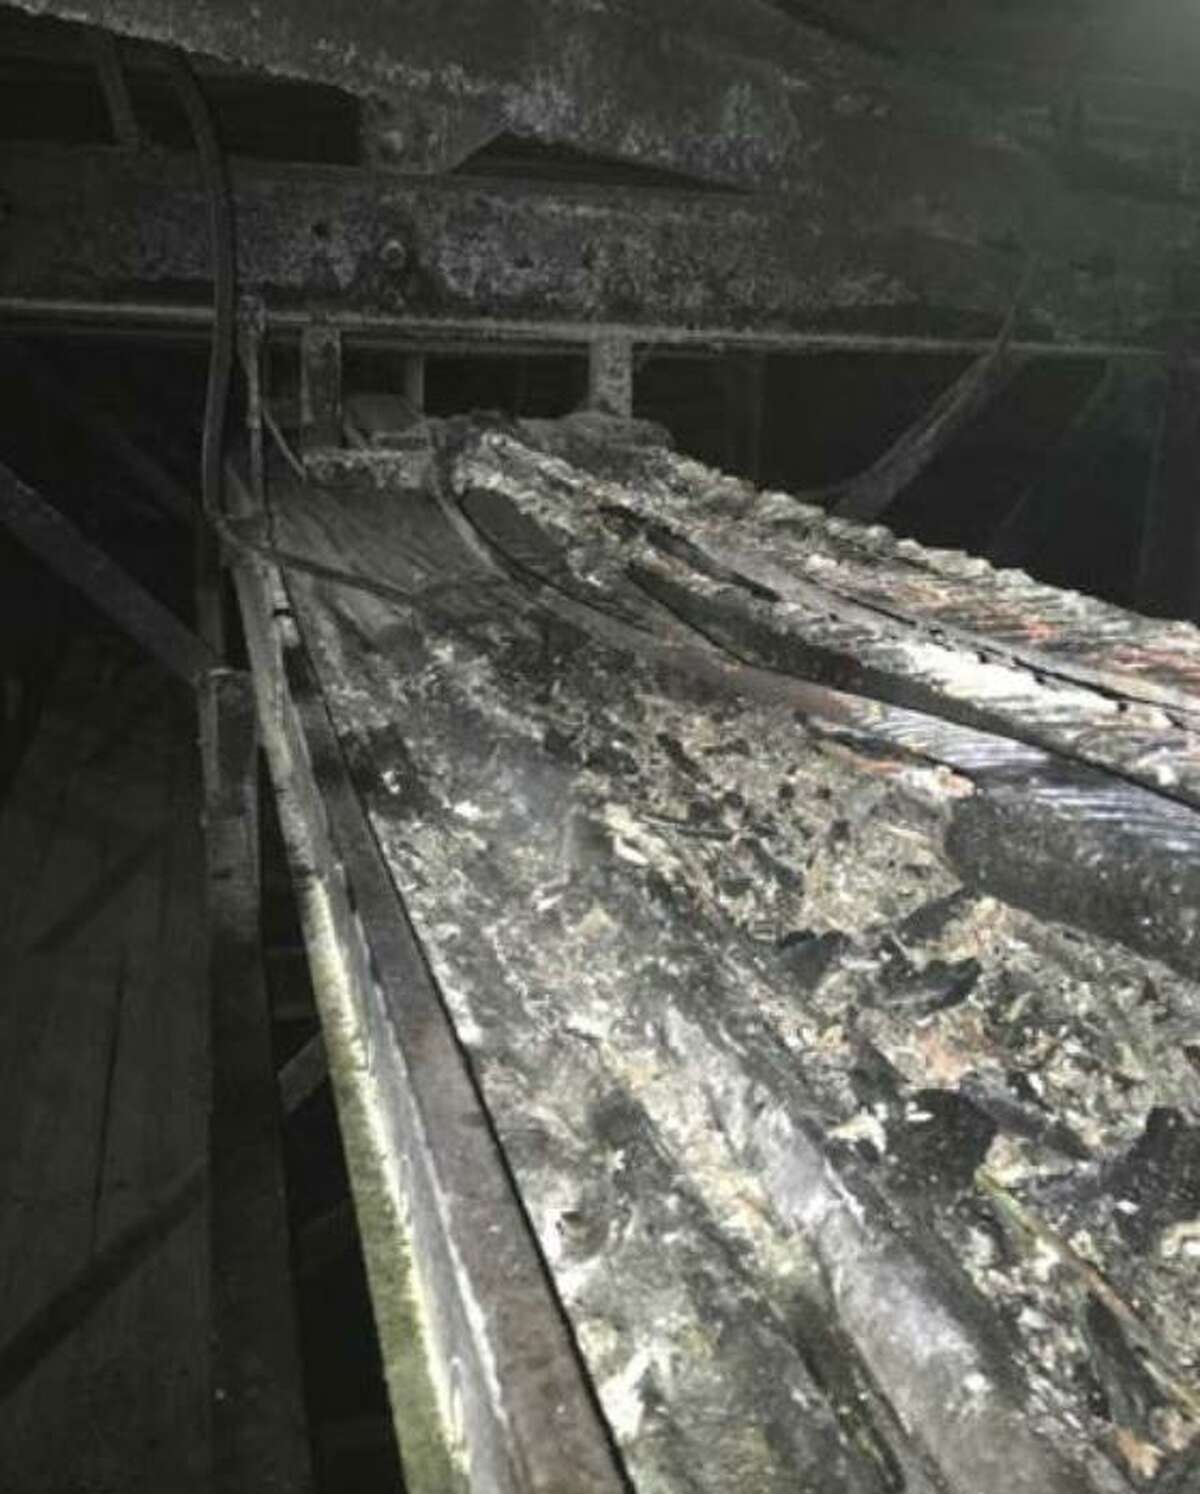 Nearly a week after a fire in a Milford electricial substation, there are still delays on Metro-North trains between New Haven and Stamford. The fire happened at 12:15 a.m. on Feb. 19, 2019 when there was a circuit breaker failure at an overhead traction power substation.